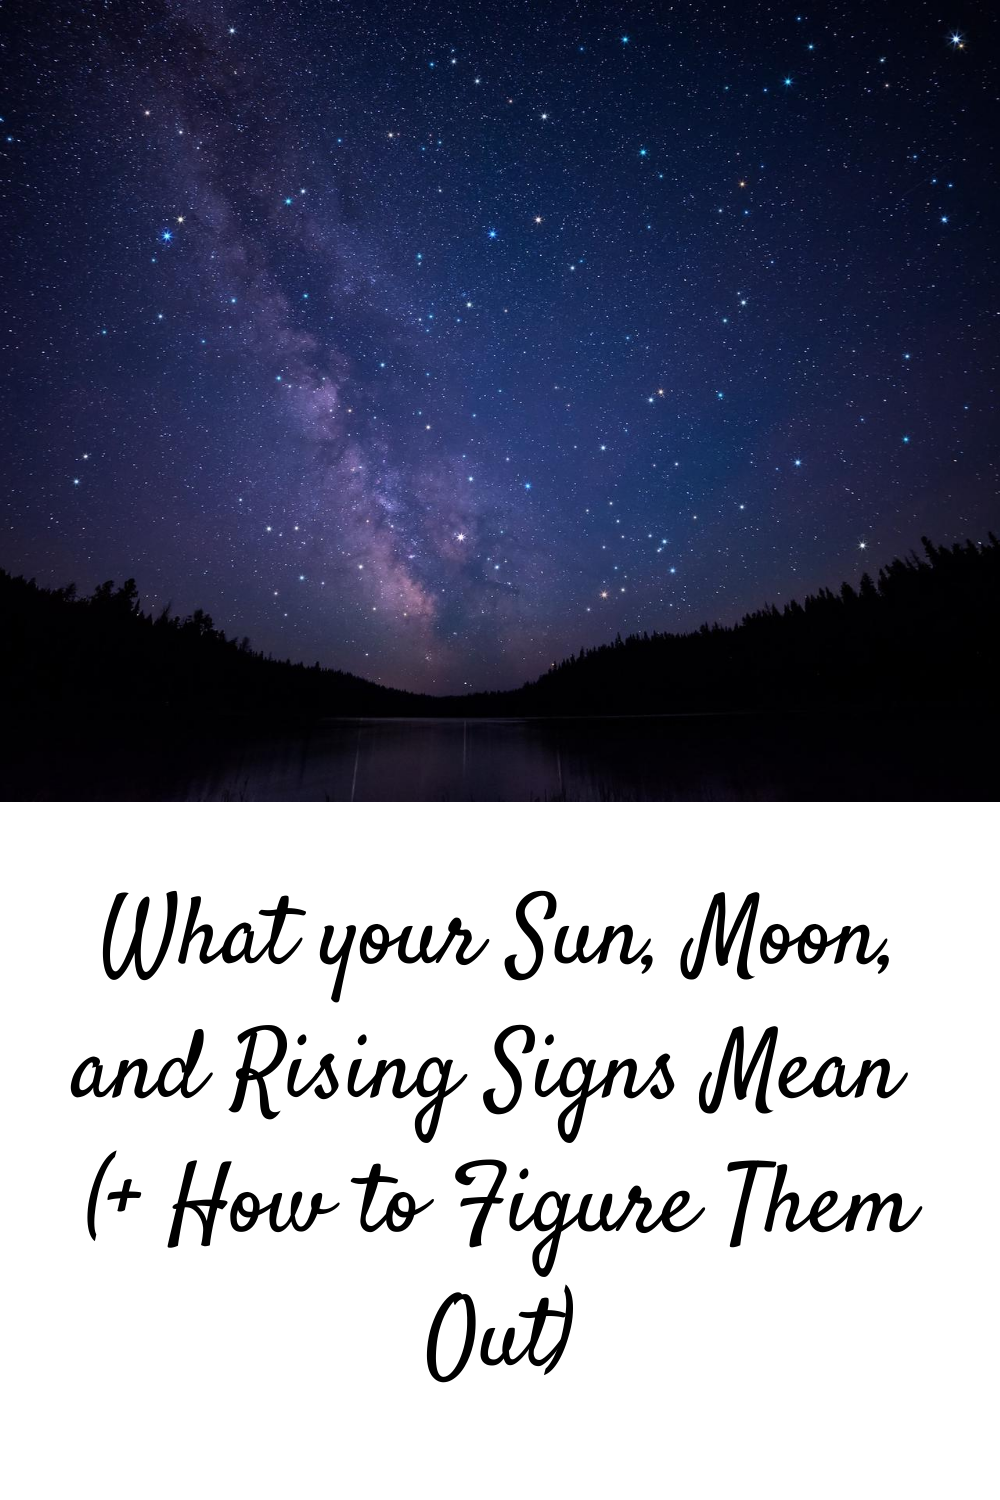 What your Sun, Moon, and Rising Signs Mean (+ How to Figure Them Out)